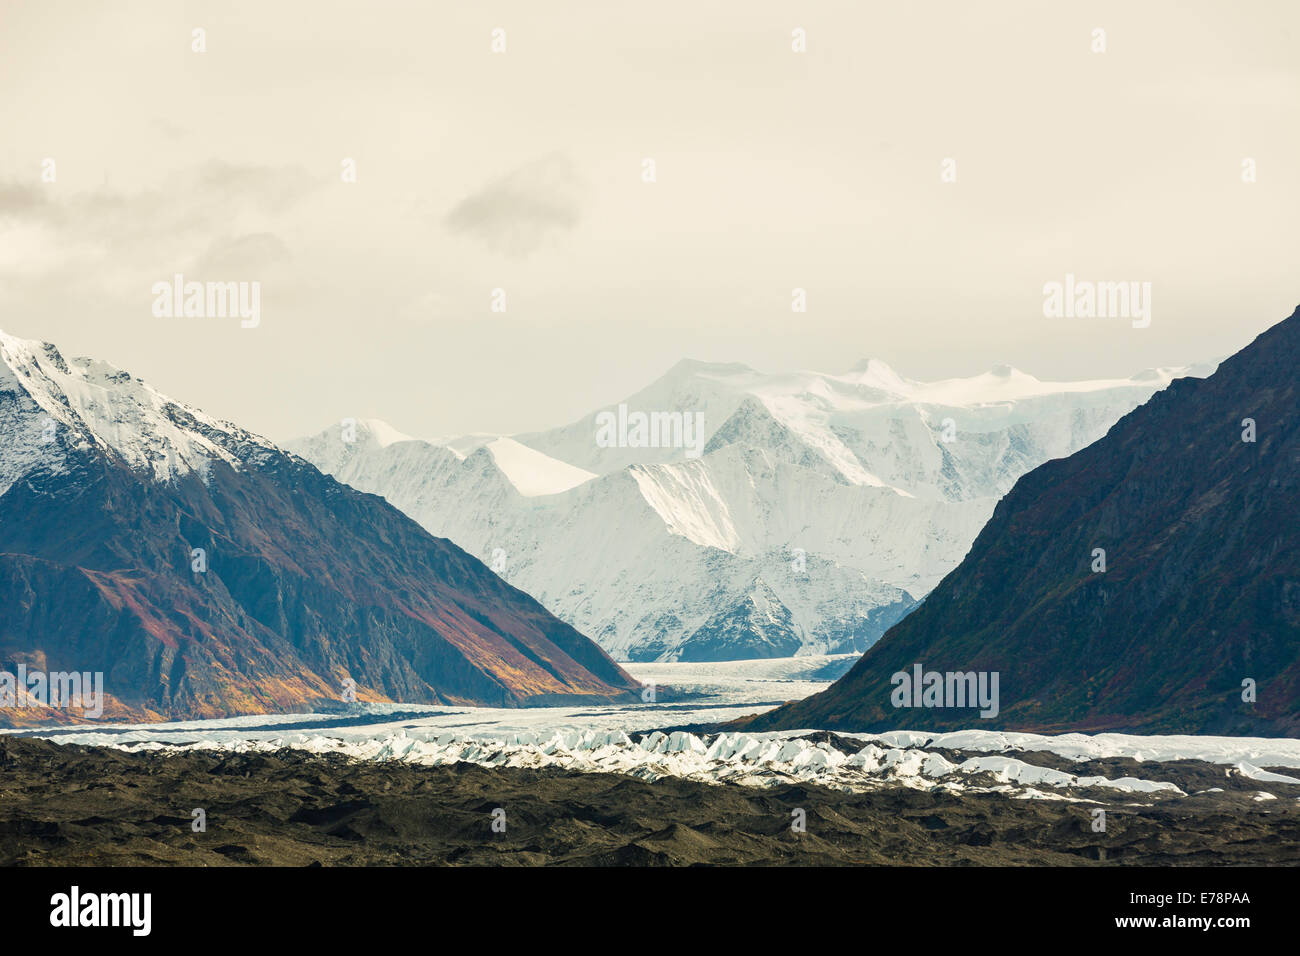 The Matanuska Glacier winds its way down the Chugach  Mountains of Southcentral Alaska in autumn. - Stock Image